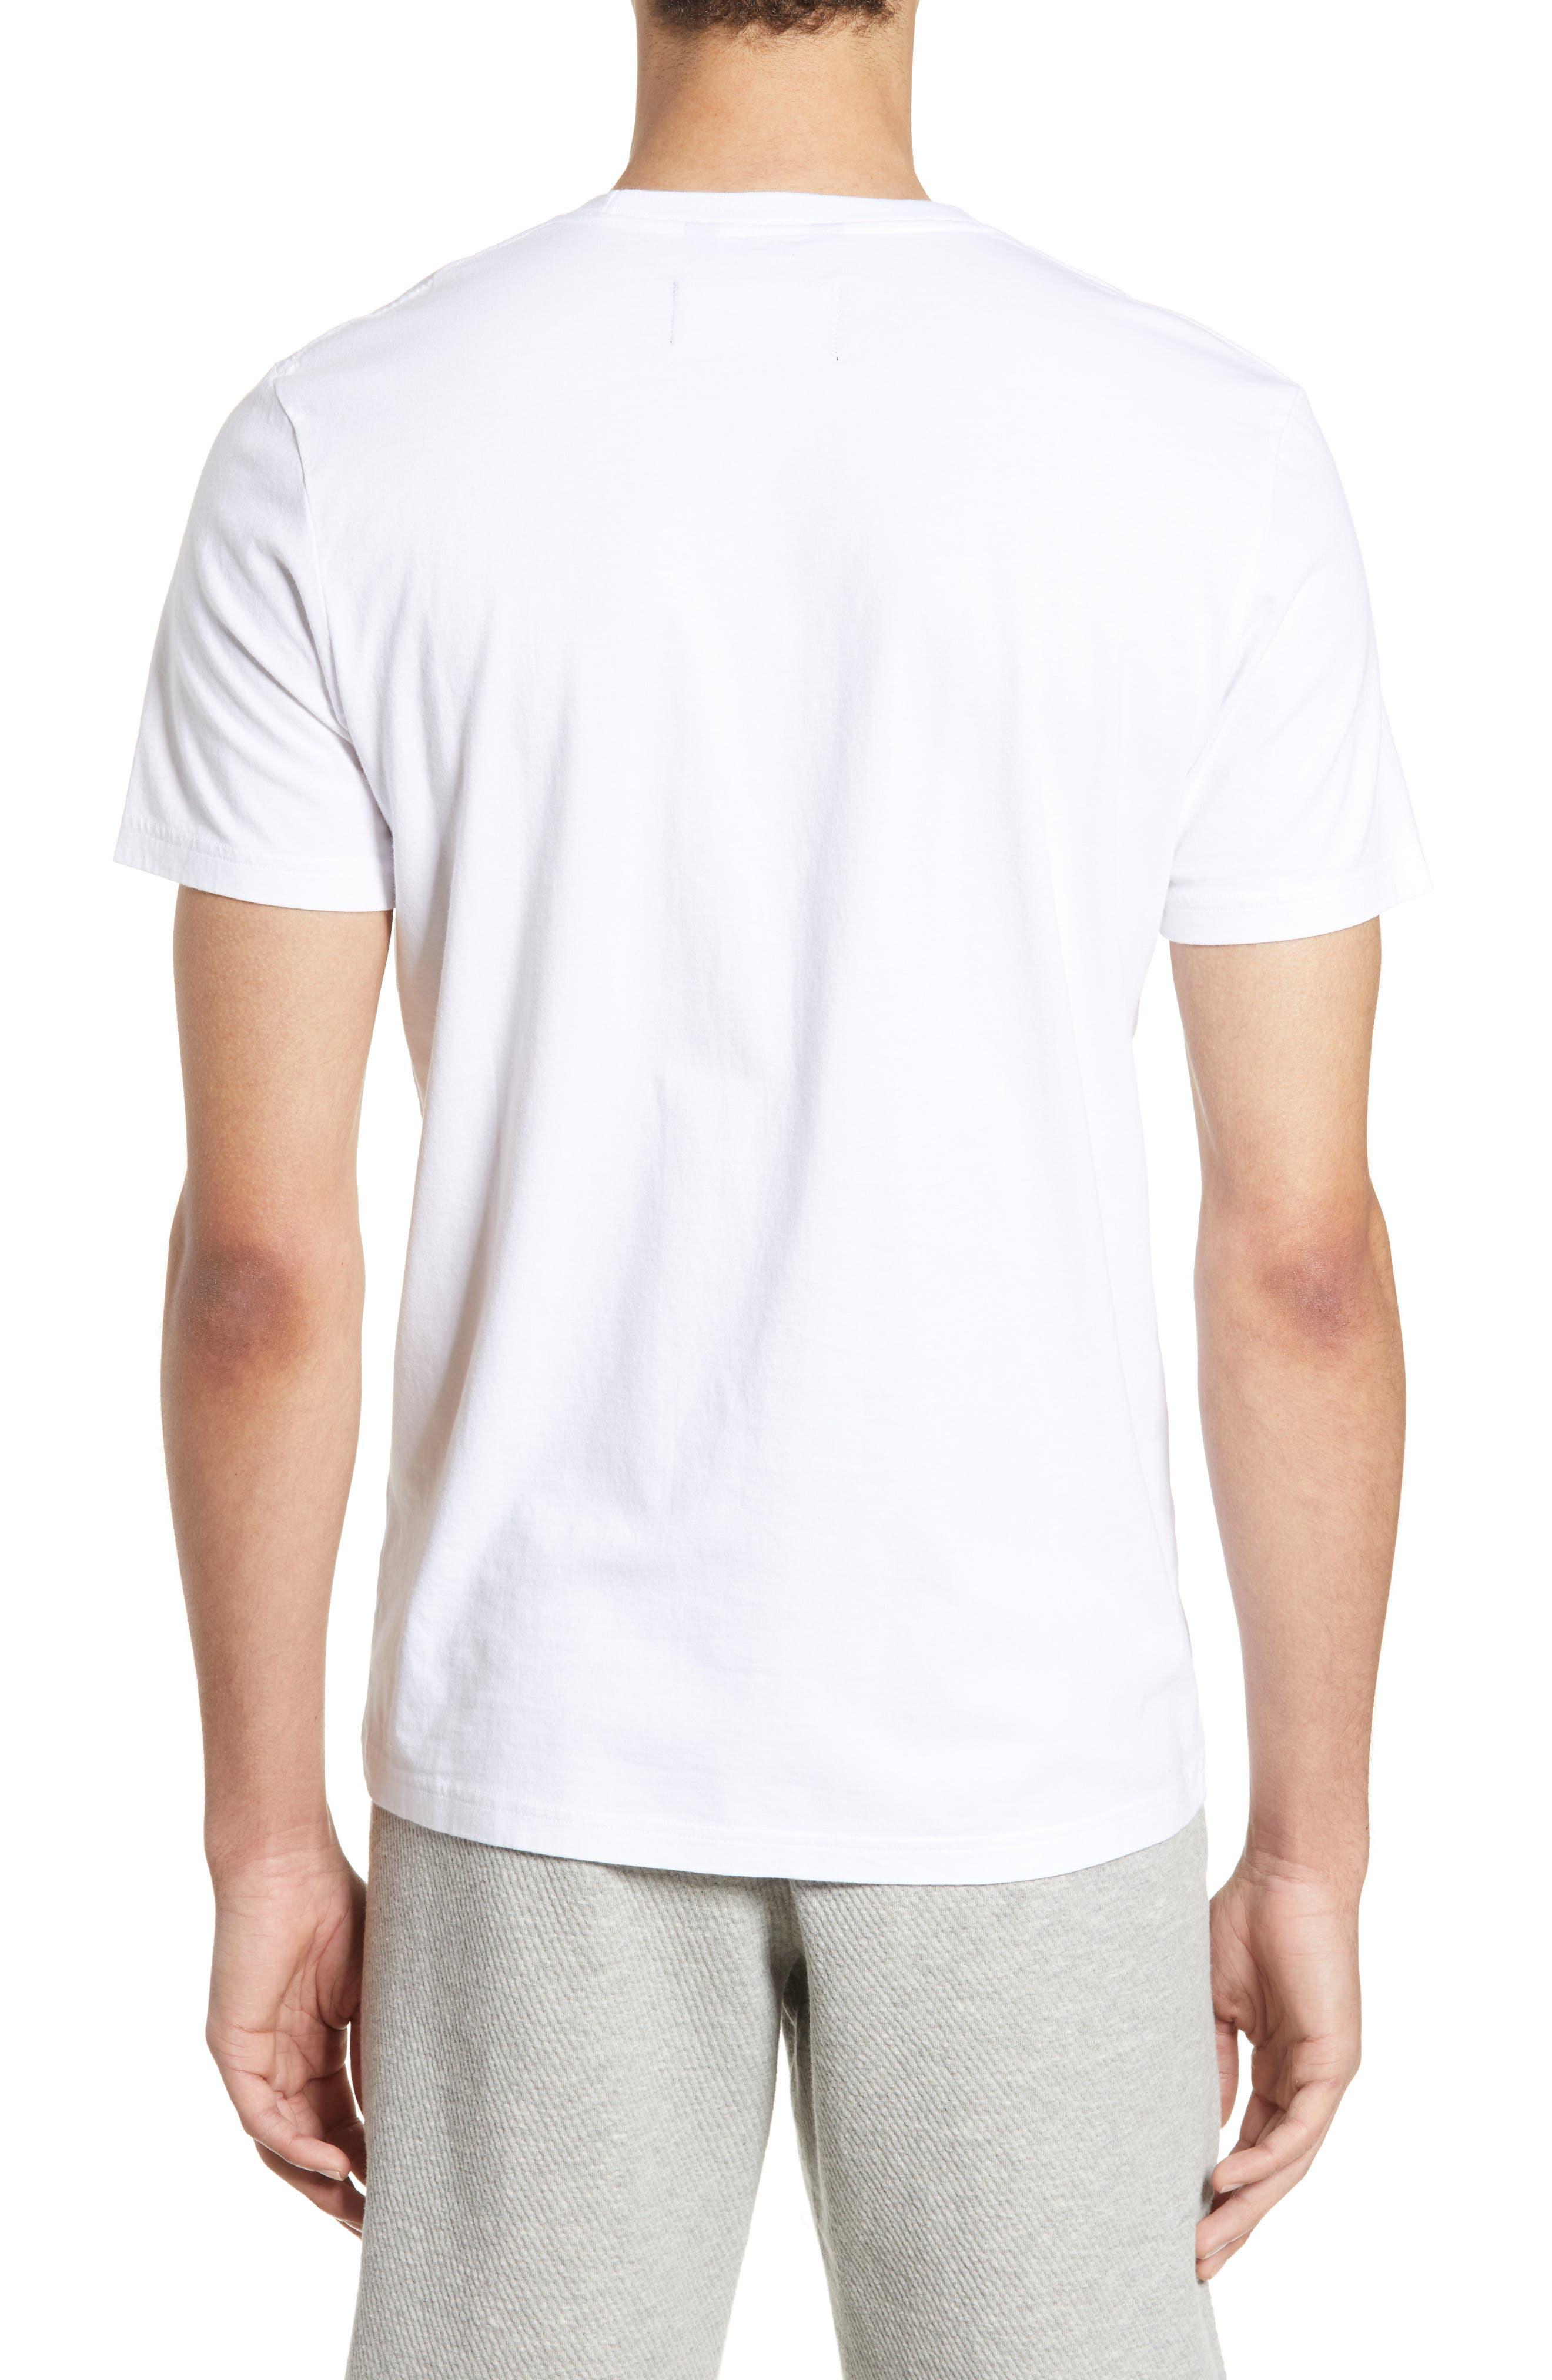 WINGS + HORNS, Short Sleeve Crewneck T-Shirt, Alternate thumbnail 2, color, WHITE